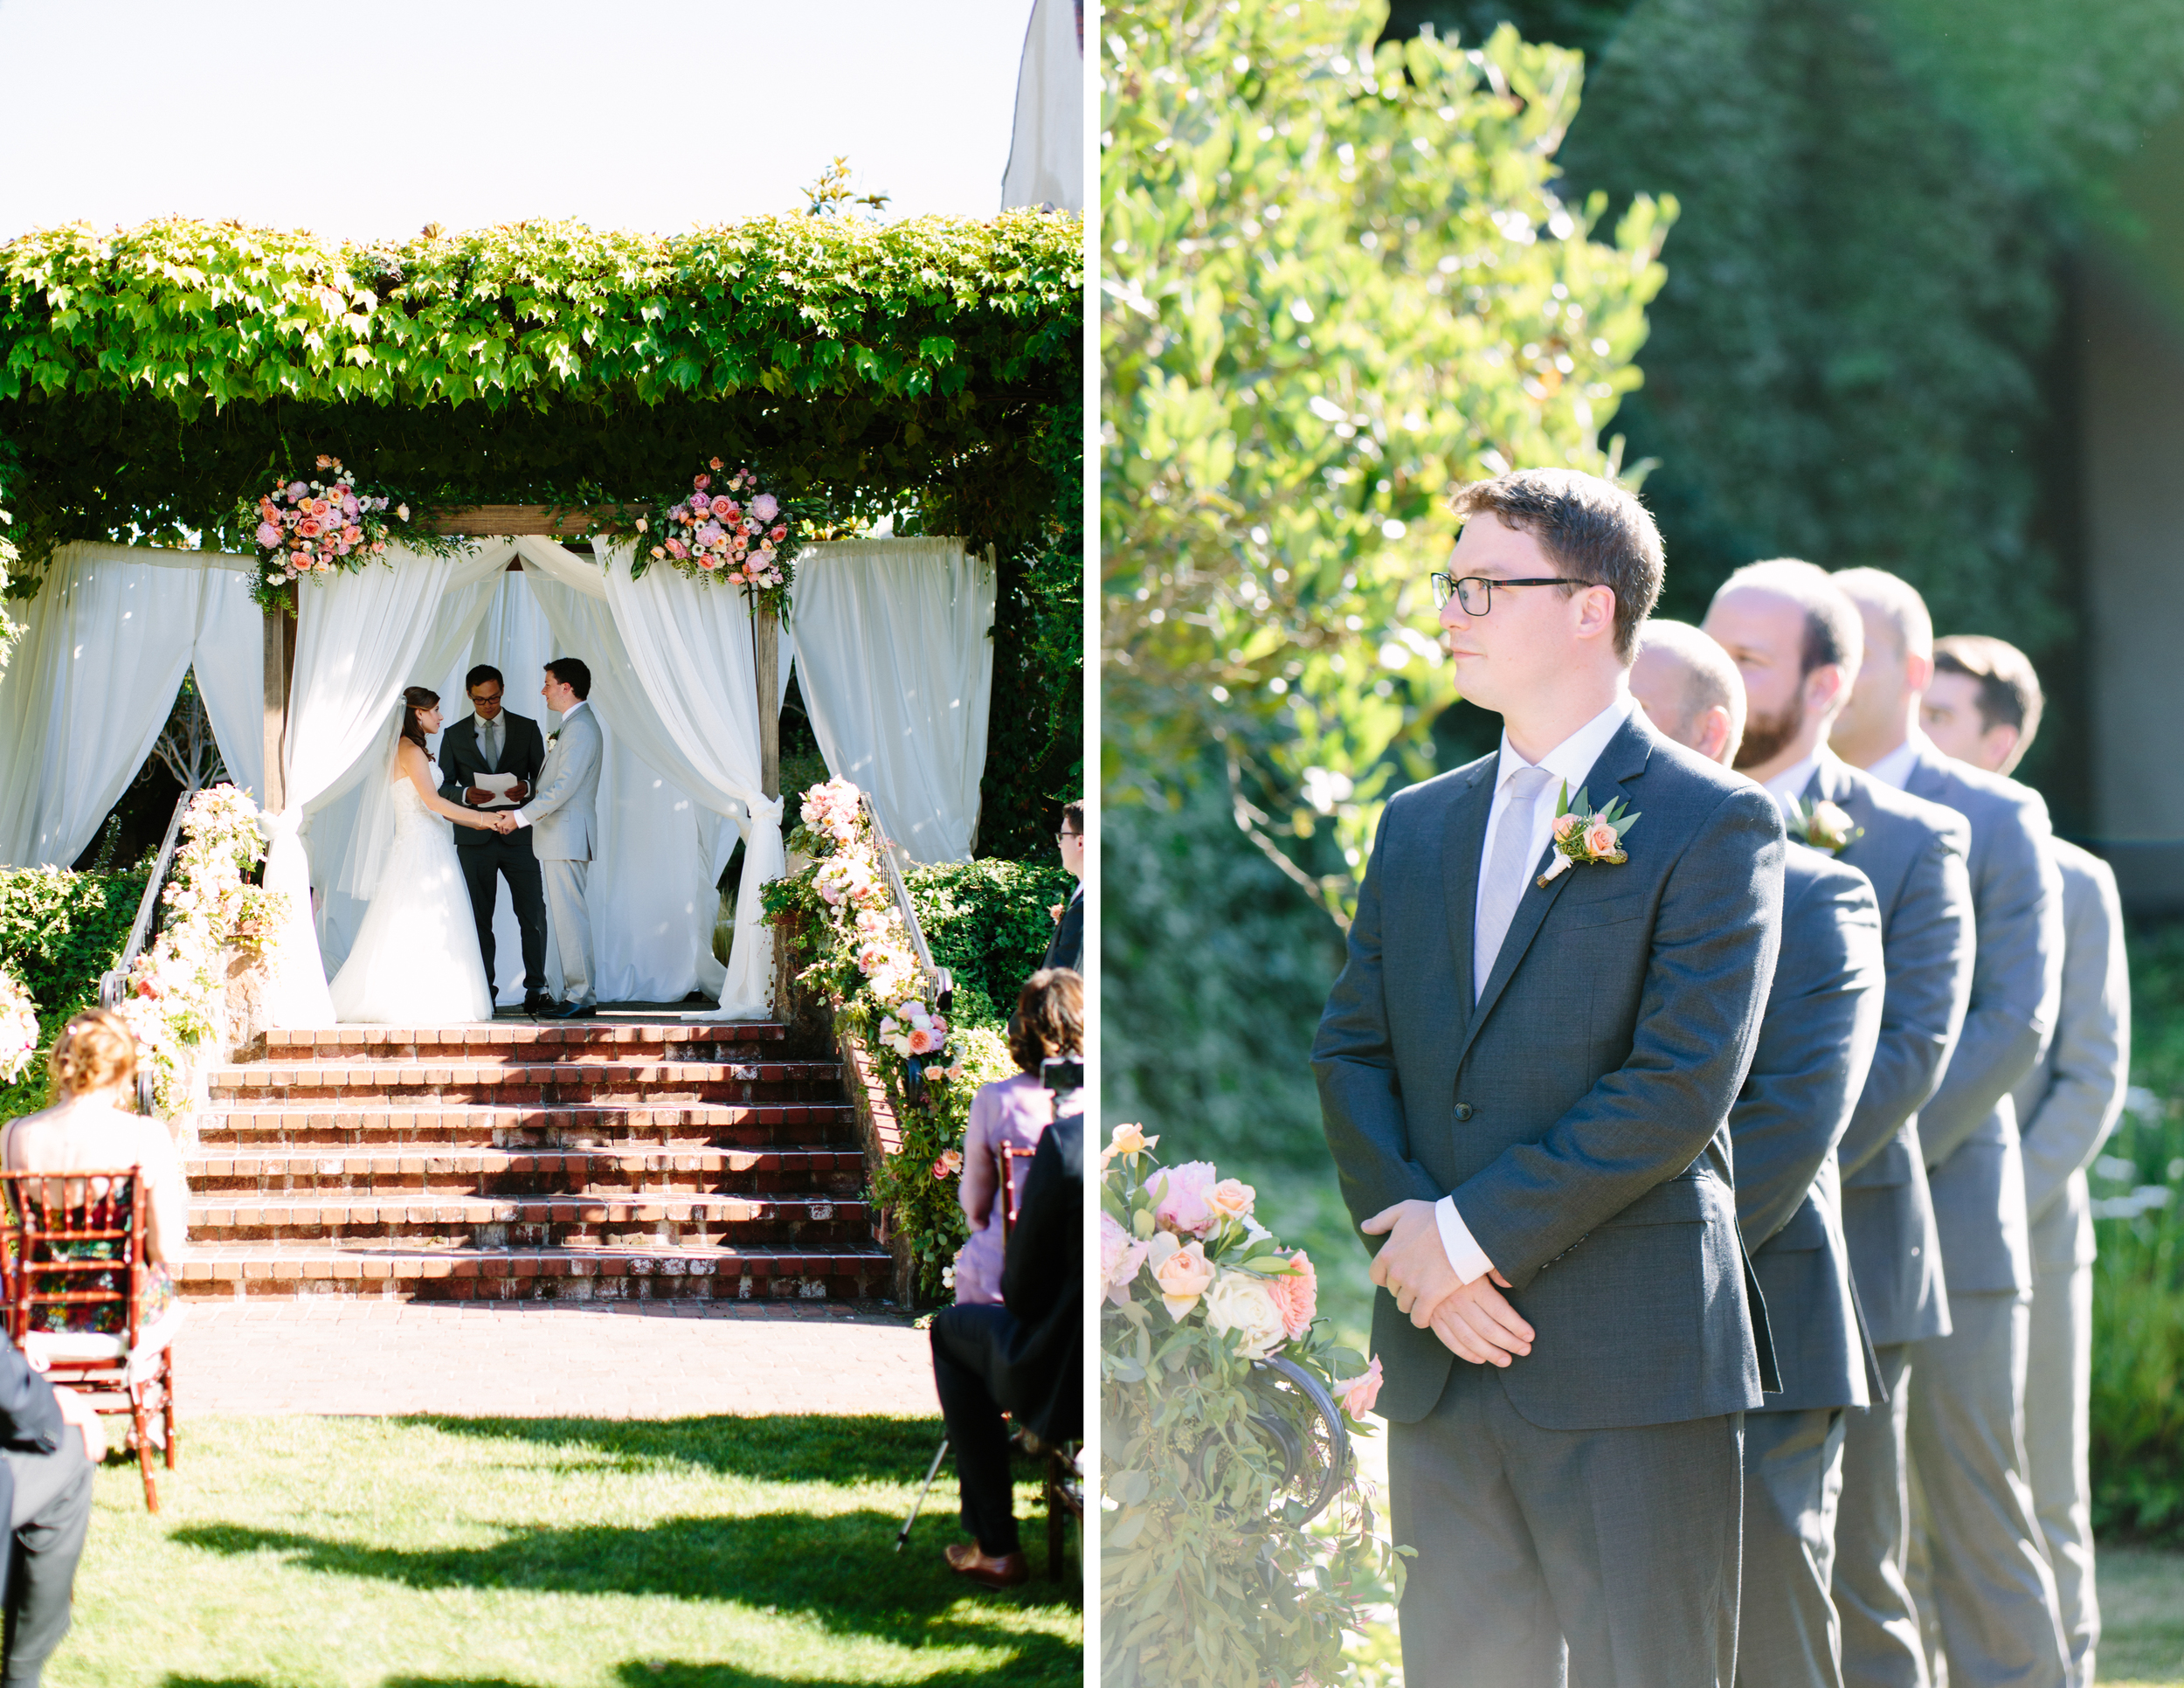 sonoma golf club wedding 4a.jpg